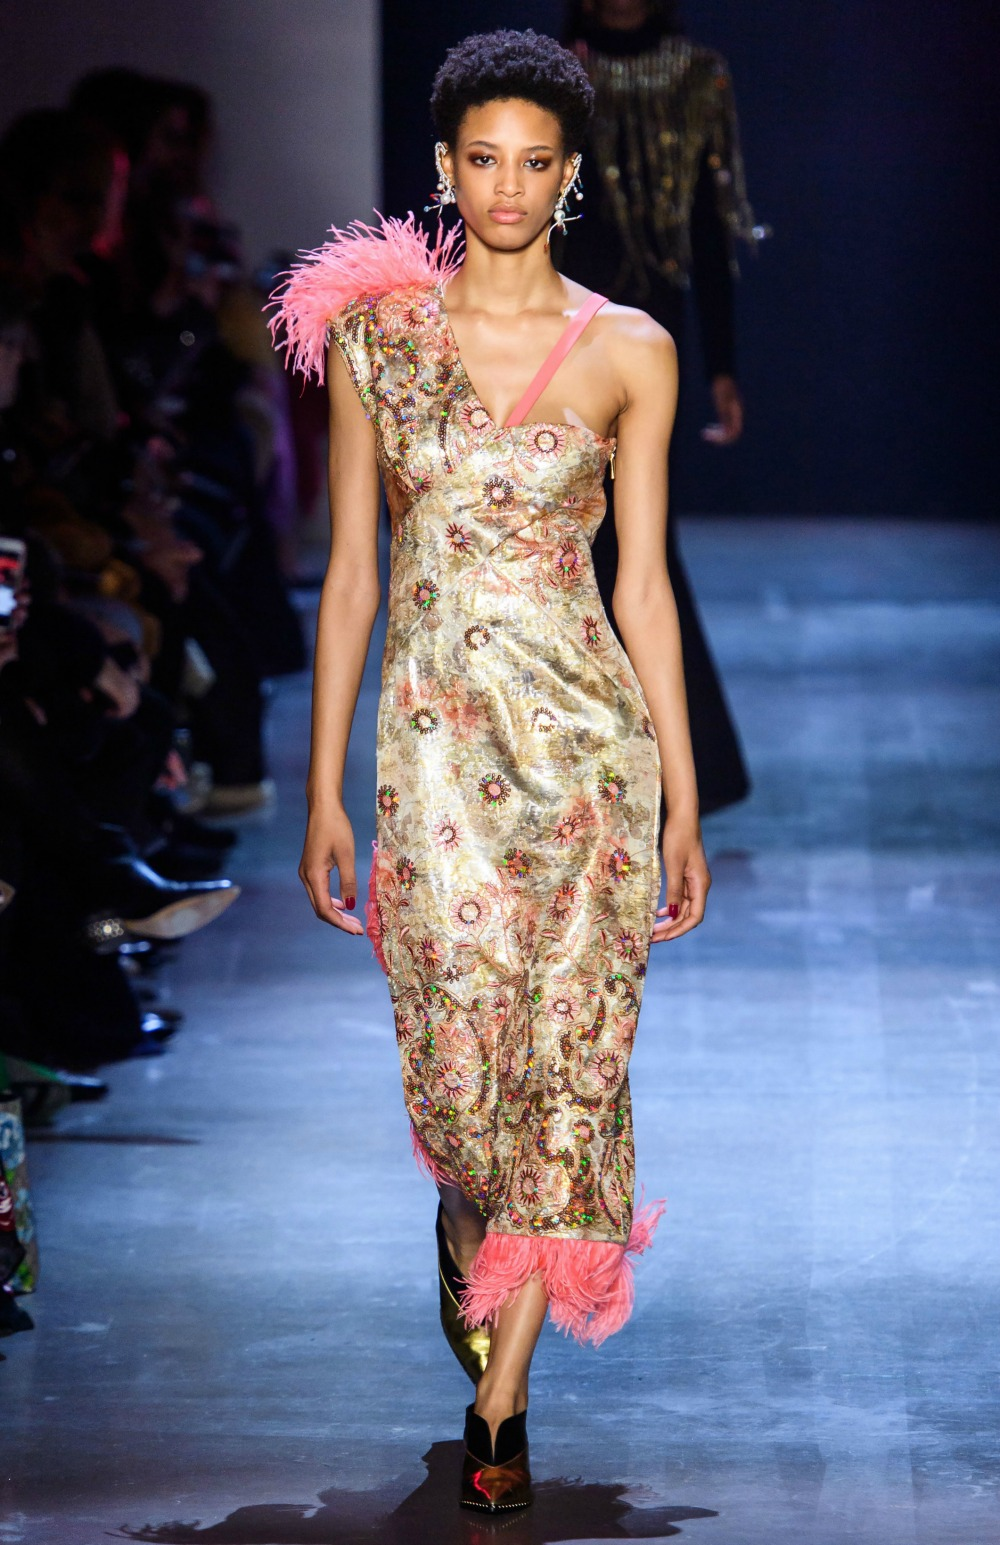 2019 Fall Fashion Trends to Wear Now I Feather Accents on Prabal Gurung FW19 Runway #FallFashion #Runway #Trends #FashionBlog #Styleinspo